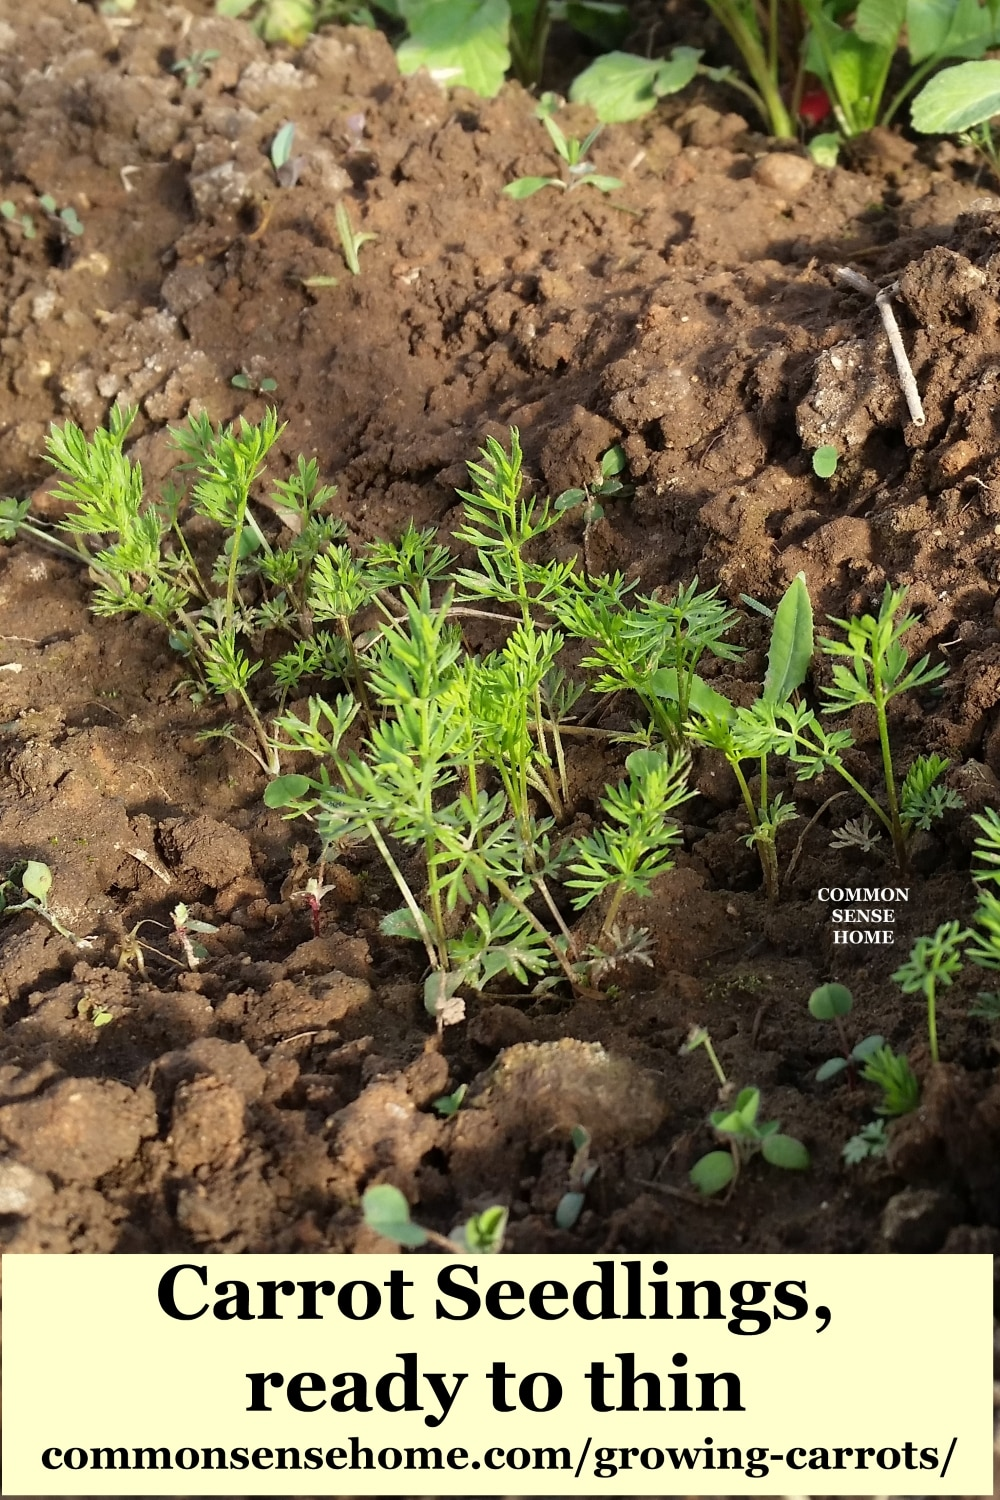 Carrot seedlings in garden soil that are ready to be thinned